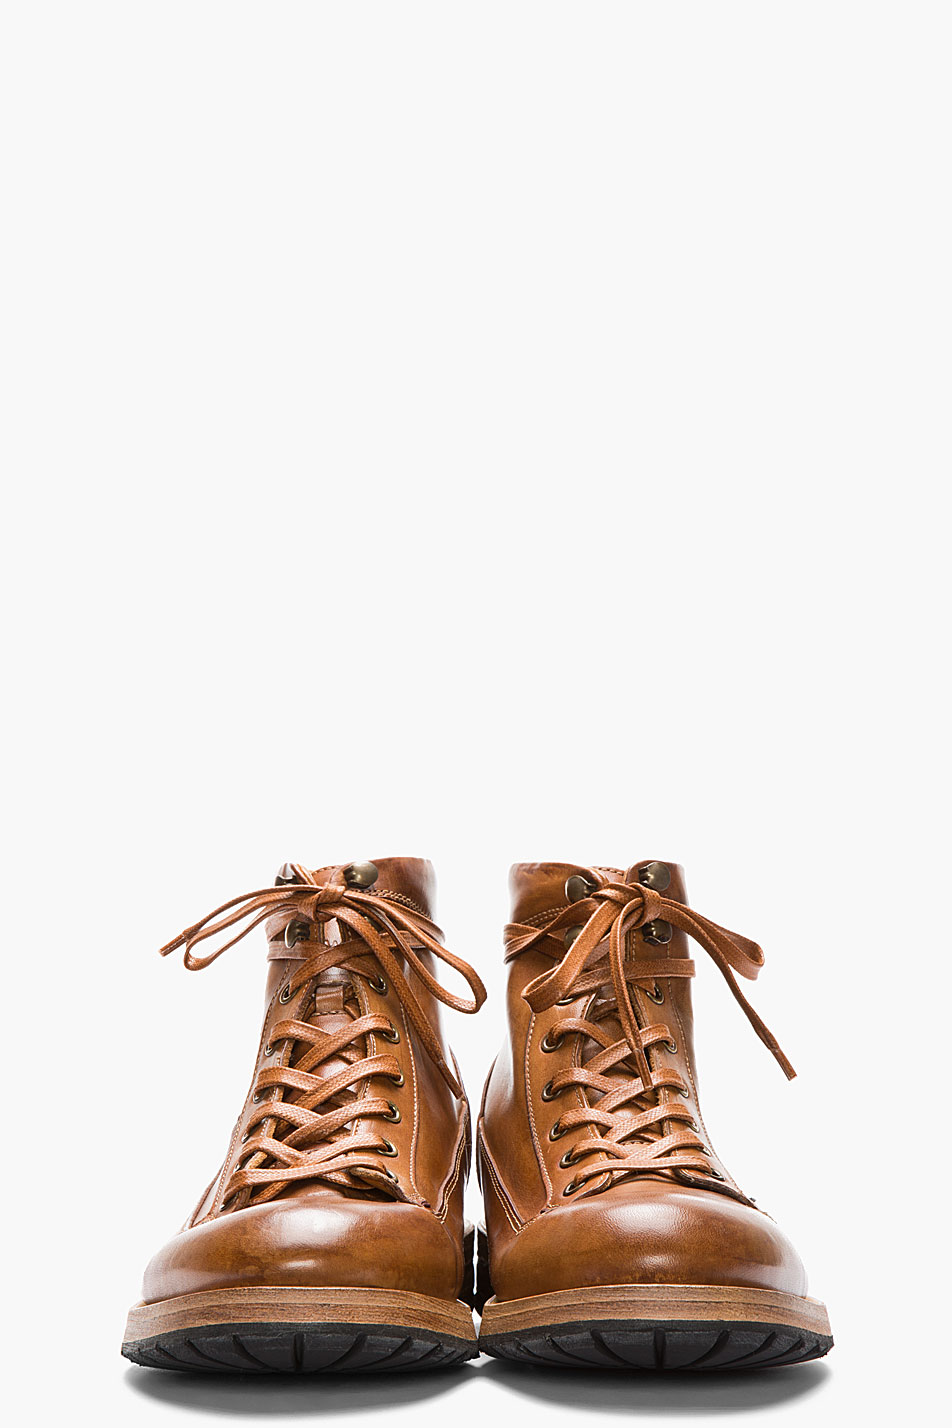 Paul Smith Tan Leather Beat Up Stubbs Boots In Brown For